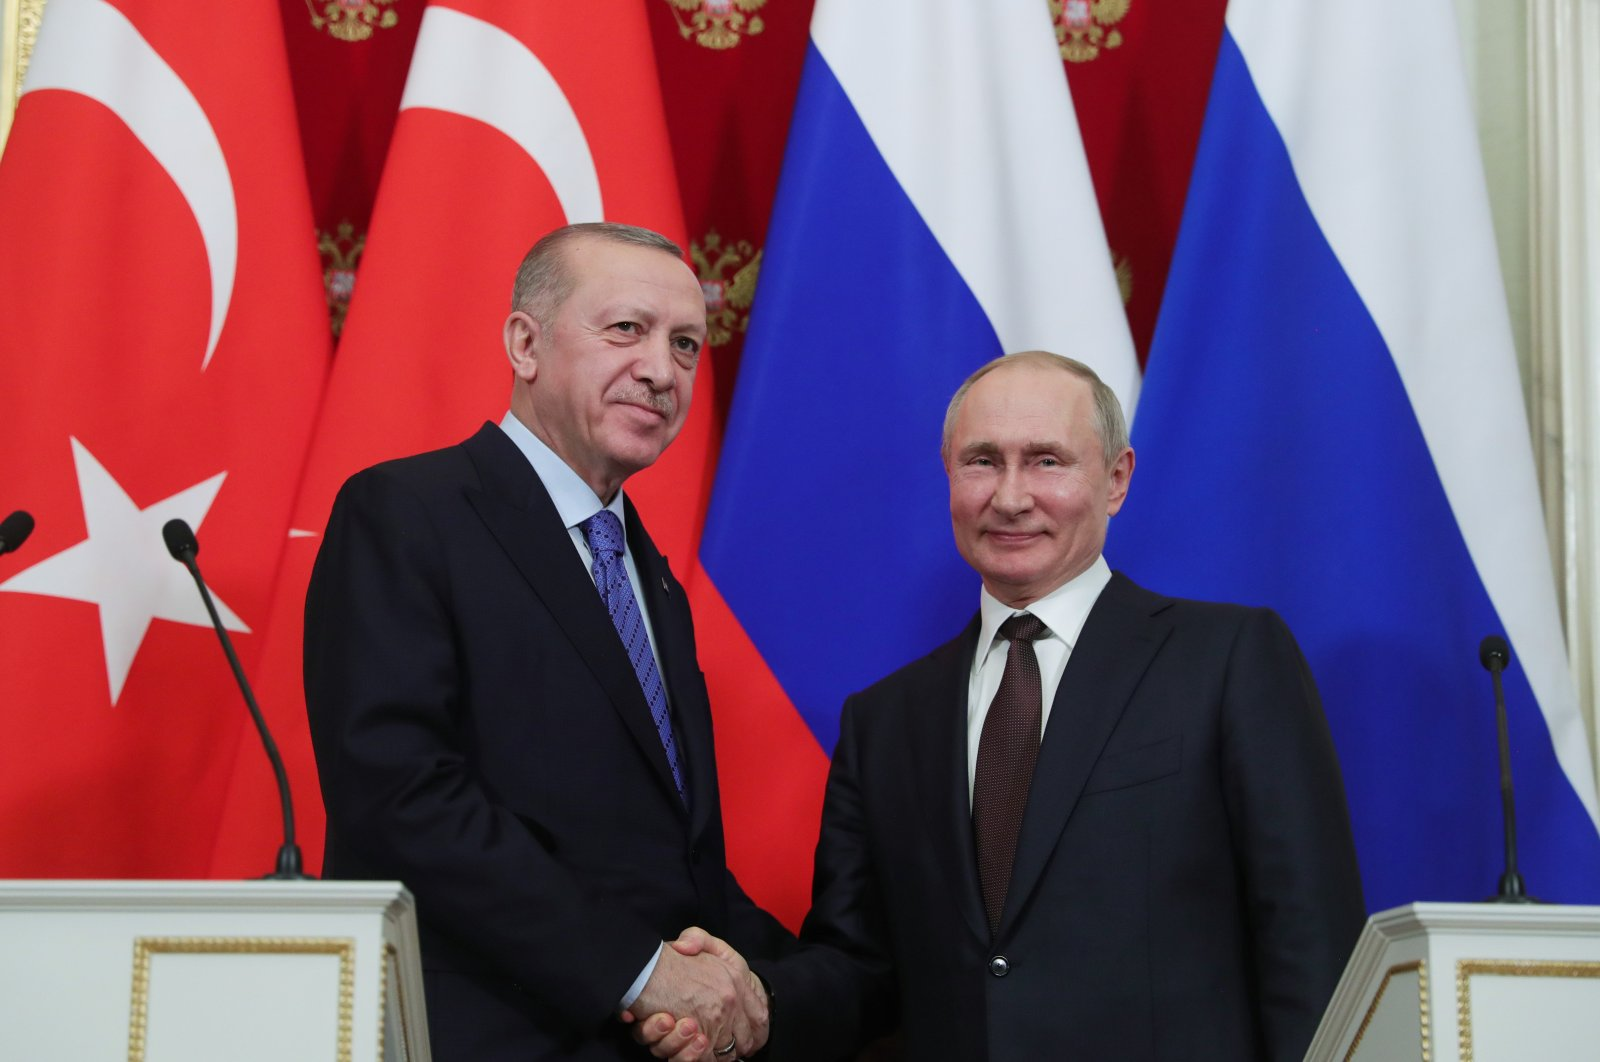 President Recep Tayyip Erdoğan (L) and Russia's President Vladimir Putin shake hands after a joint news conference in Moscow, Russia, March 6, 2020. (AA Photo)